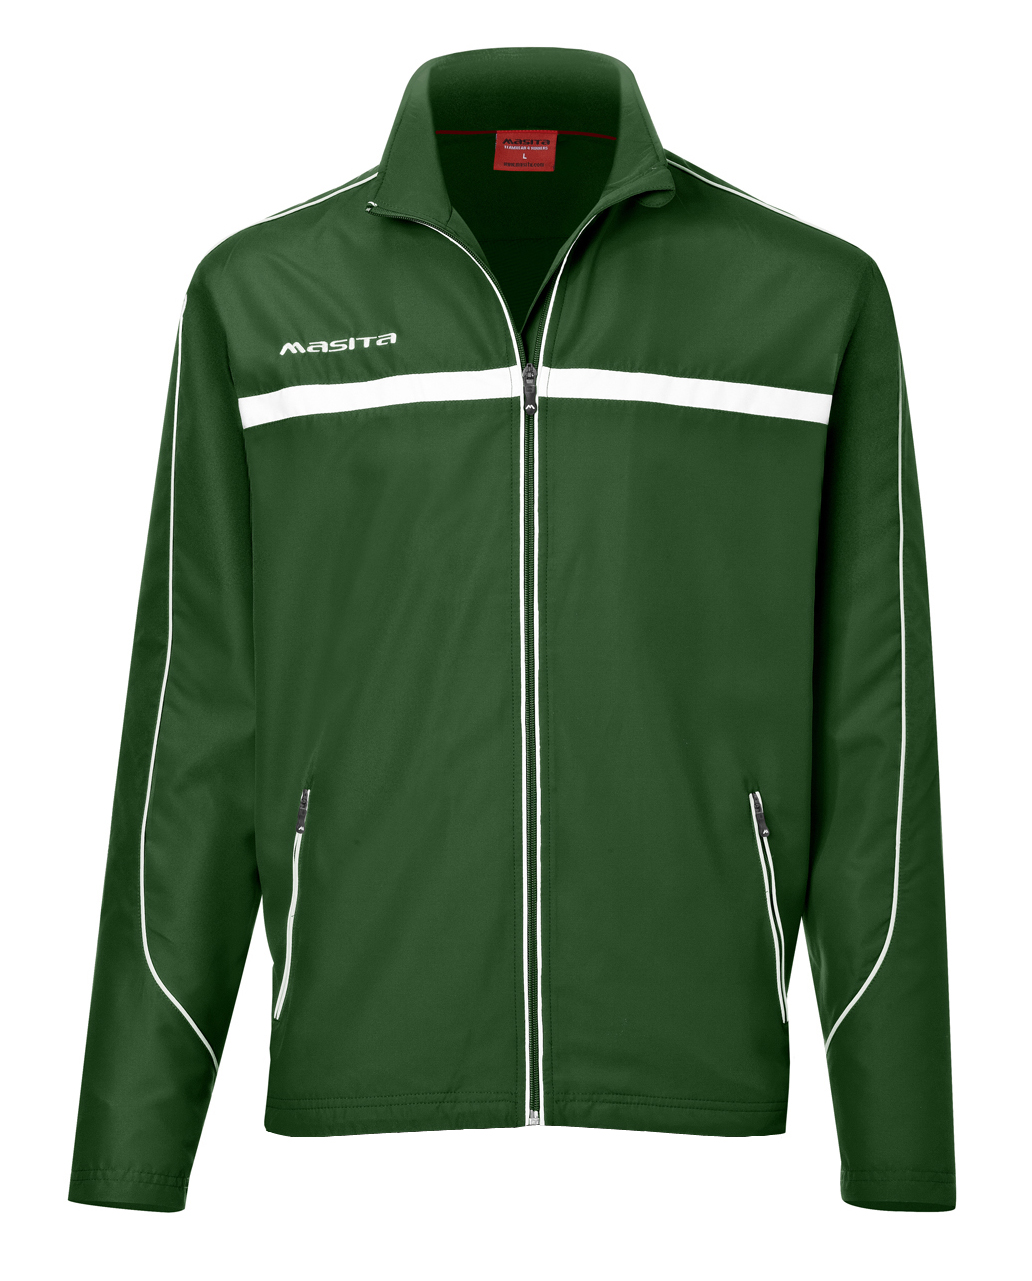 Presentation Jacket Brasil  Green / White